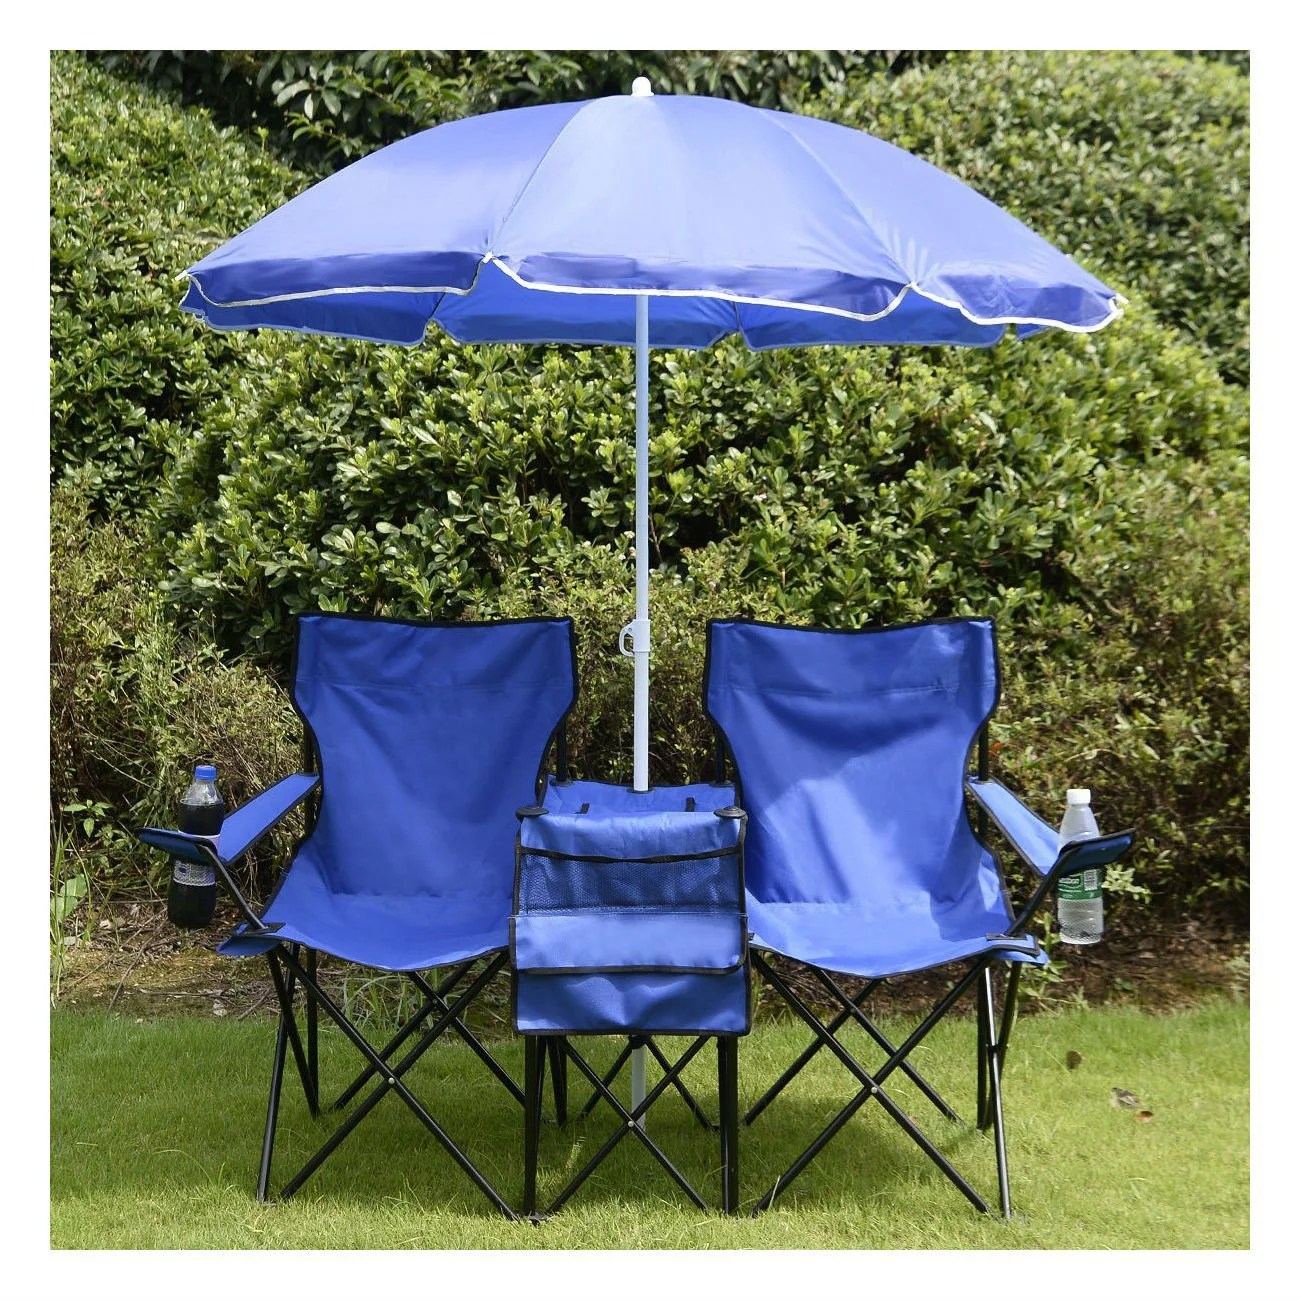 Beach Chairs With Umbrella Beach Chair With Canopy Folding Camping Chairs With Umbrella And Table Cooler Portable Double Chair For Beach Camping